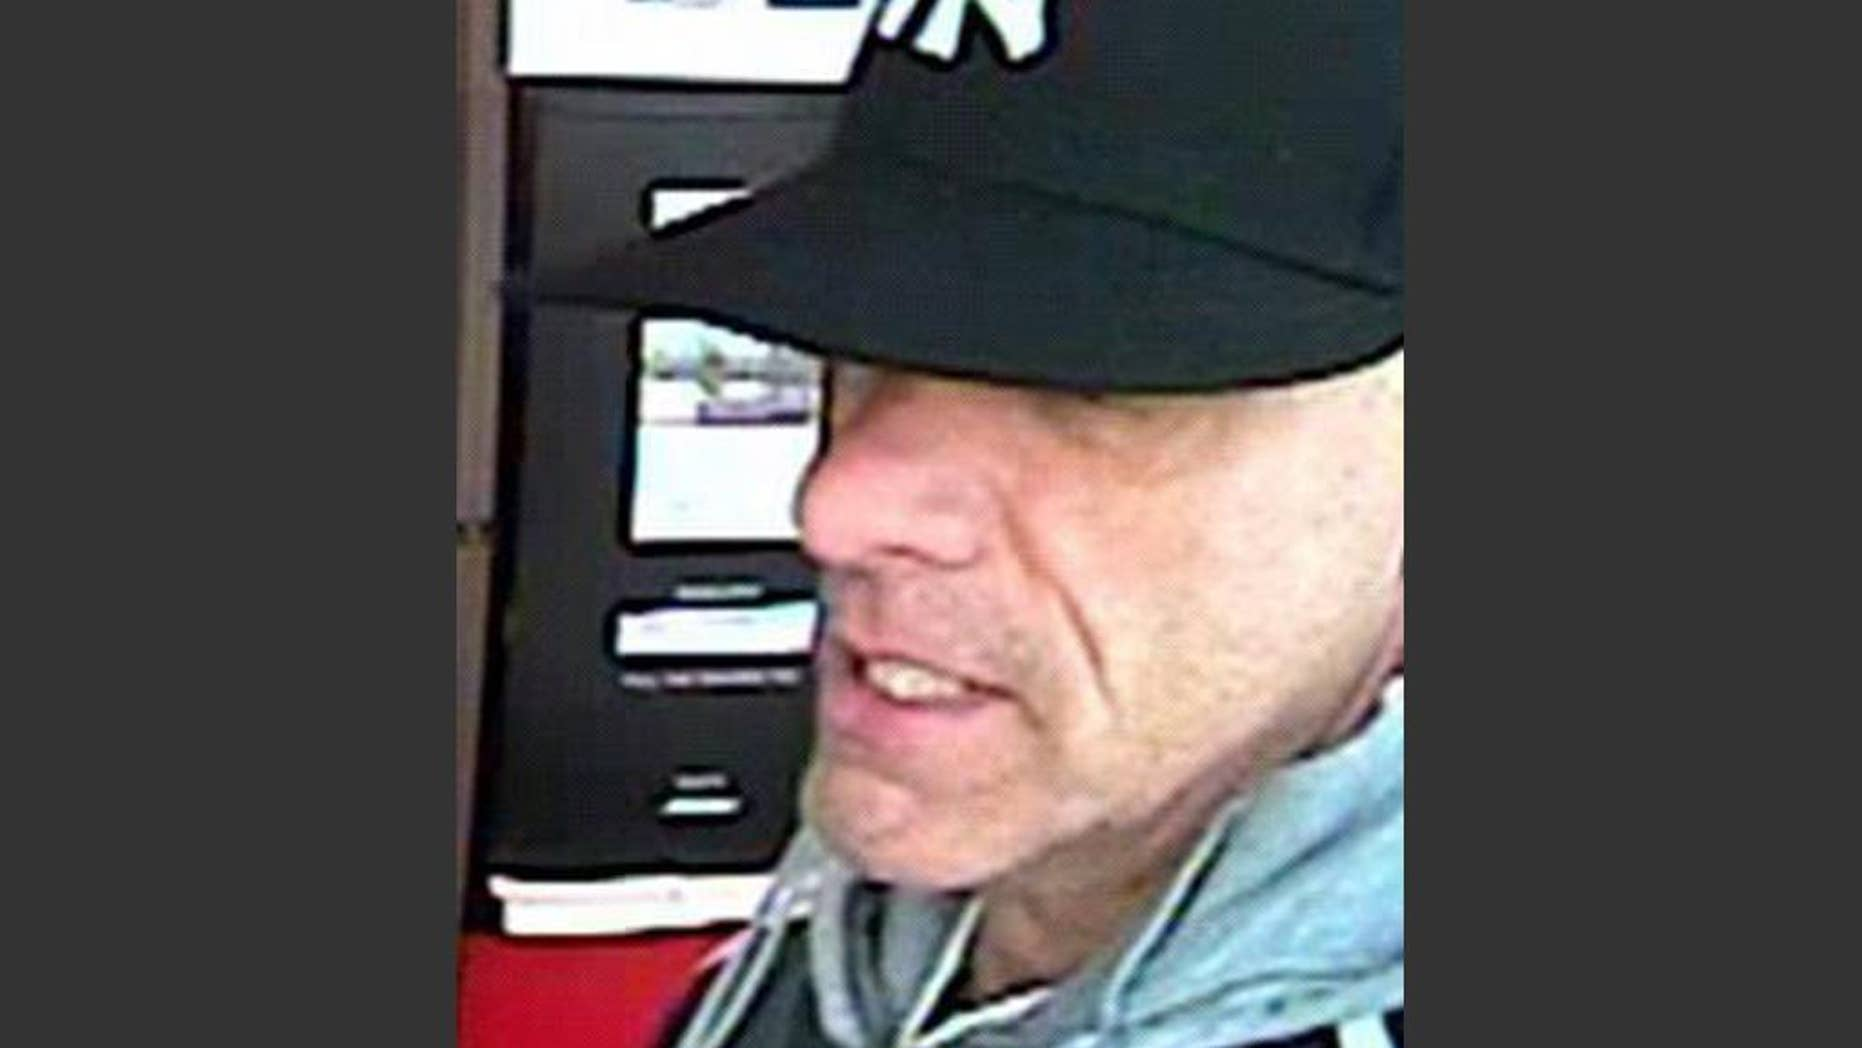 """This undated surveillance photo provided by the York Regional Police shows a bank robbery suspect, not identified by name, but nicknamed """"The Vaulter Bandit."""" On Tuesday, Sept. 15, 2015, Geneva police arrested the suspect, who had been sought under an international arrest warrant issued by Canada in connection with 22 bank robberies over the last five years. (Courtesy of York Regional Police/The Canadian Press via AP)"""